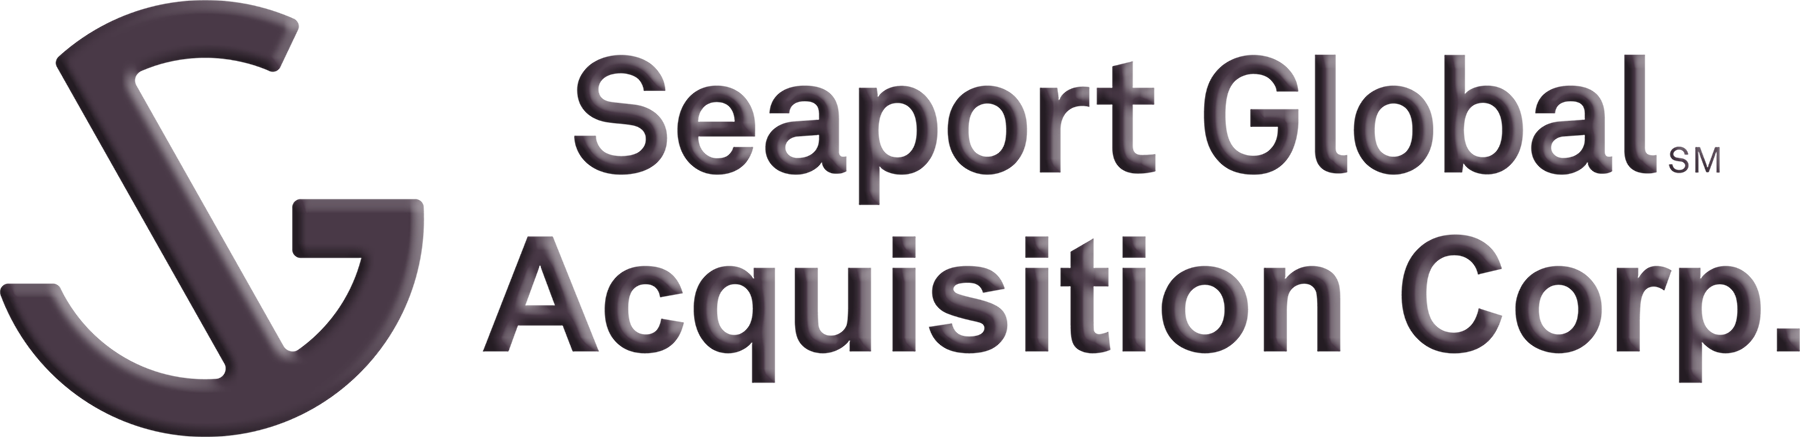 Seaport Global Acquisition Corp.